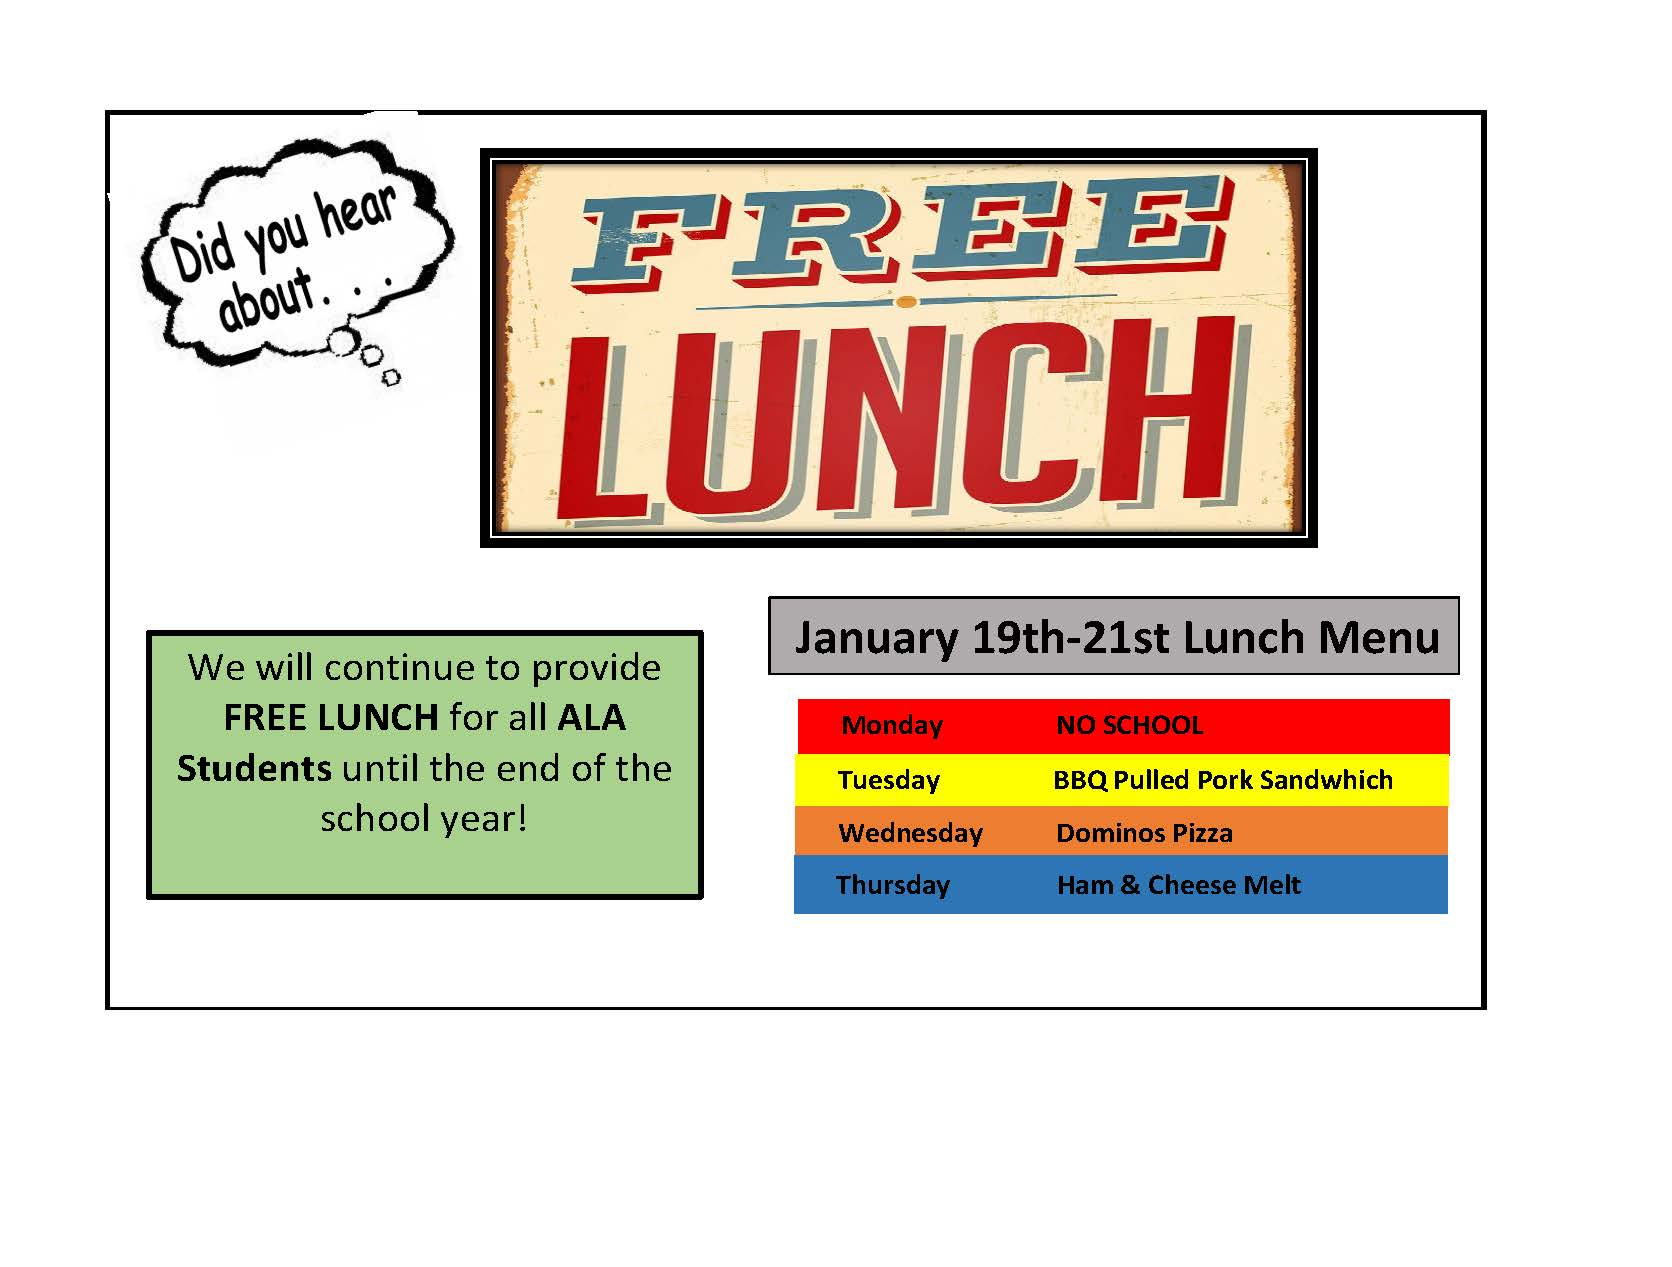 LUNCH MENU FOR JANUARY 19TH-21ST